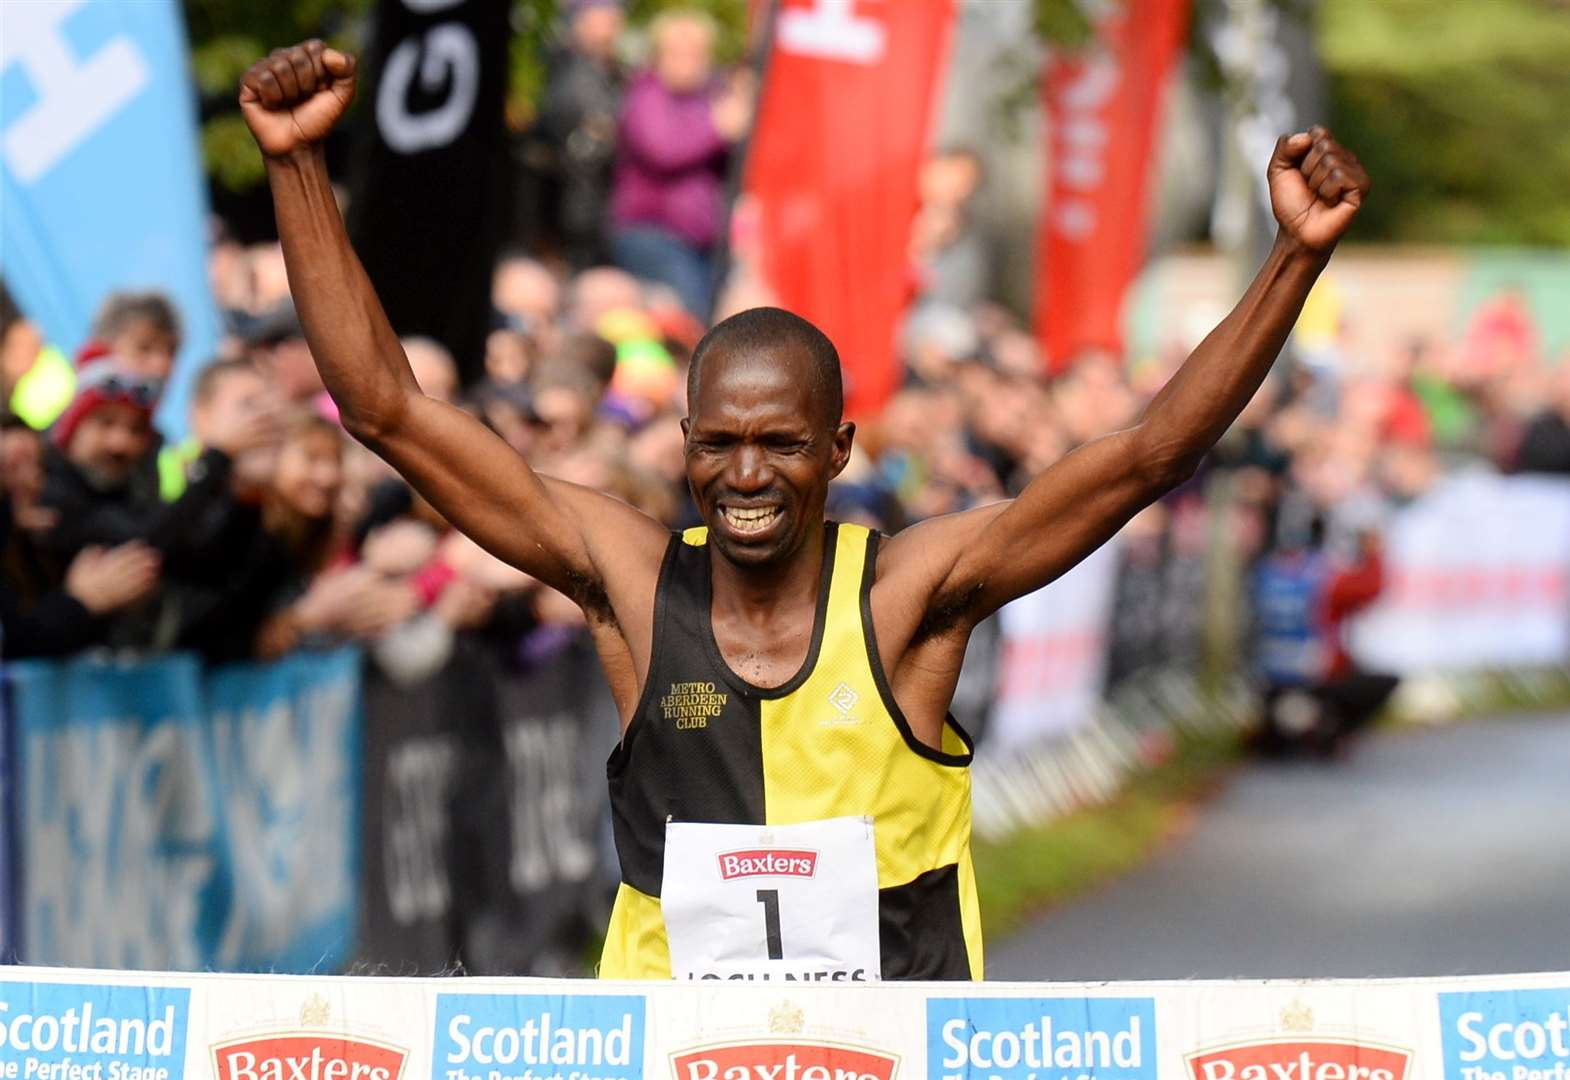 Loch Ness Marathon could help Highlands return to normality